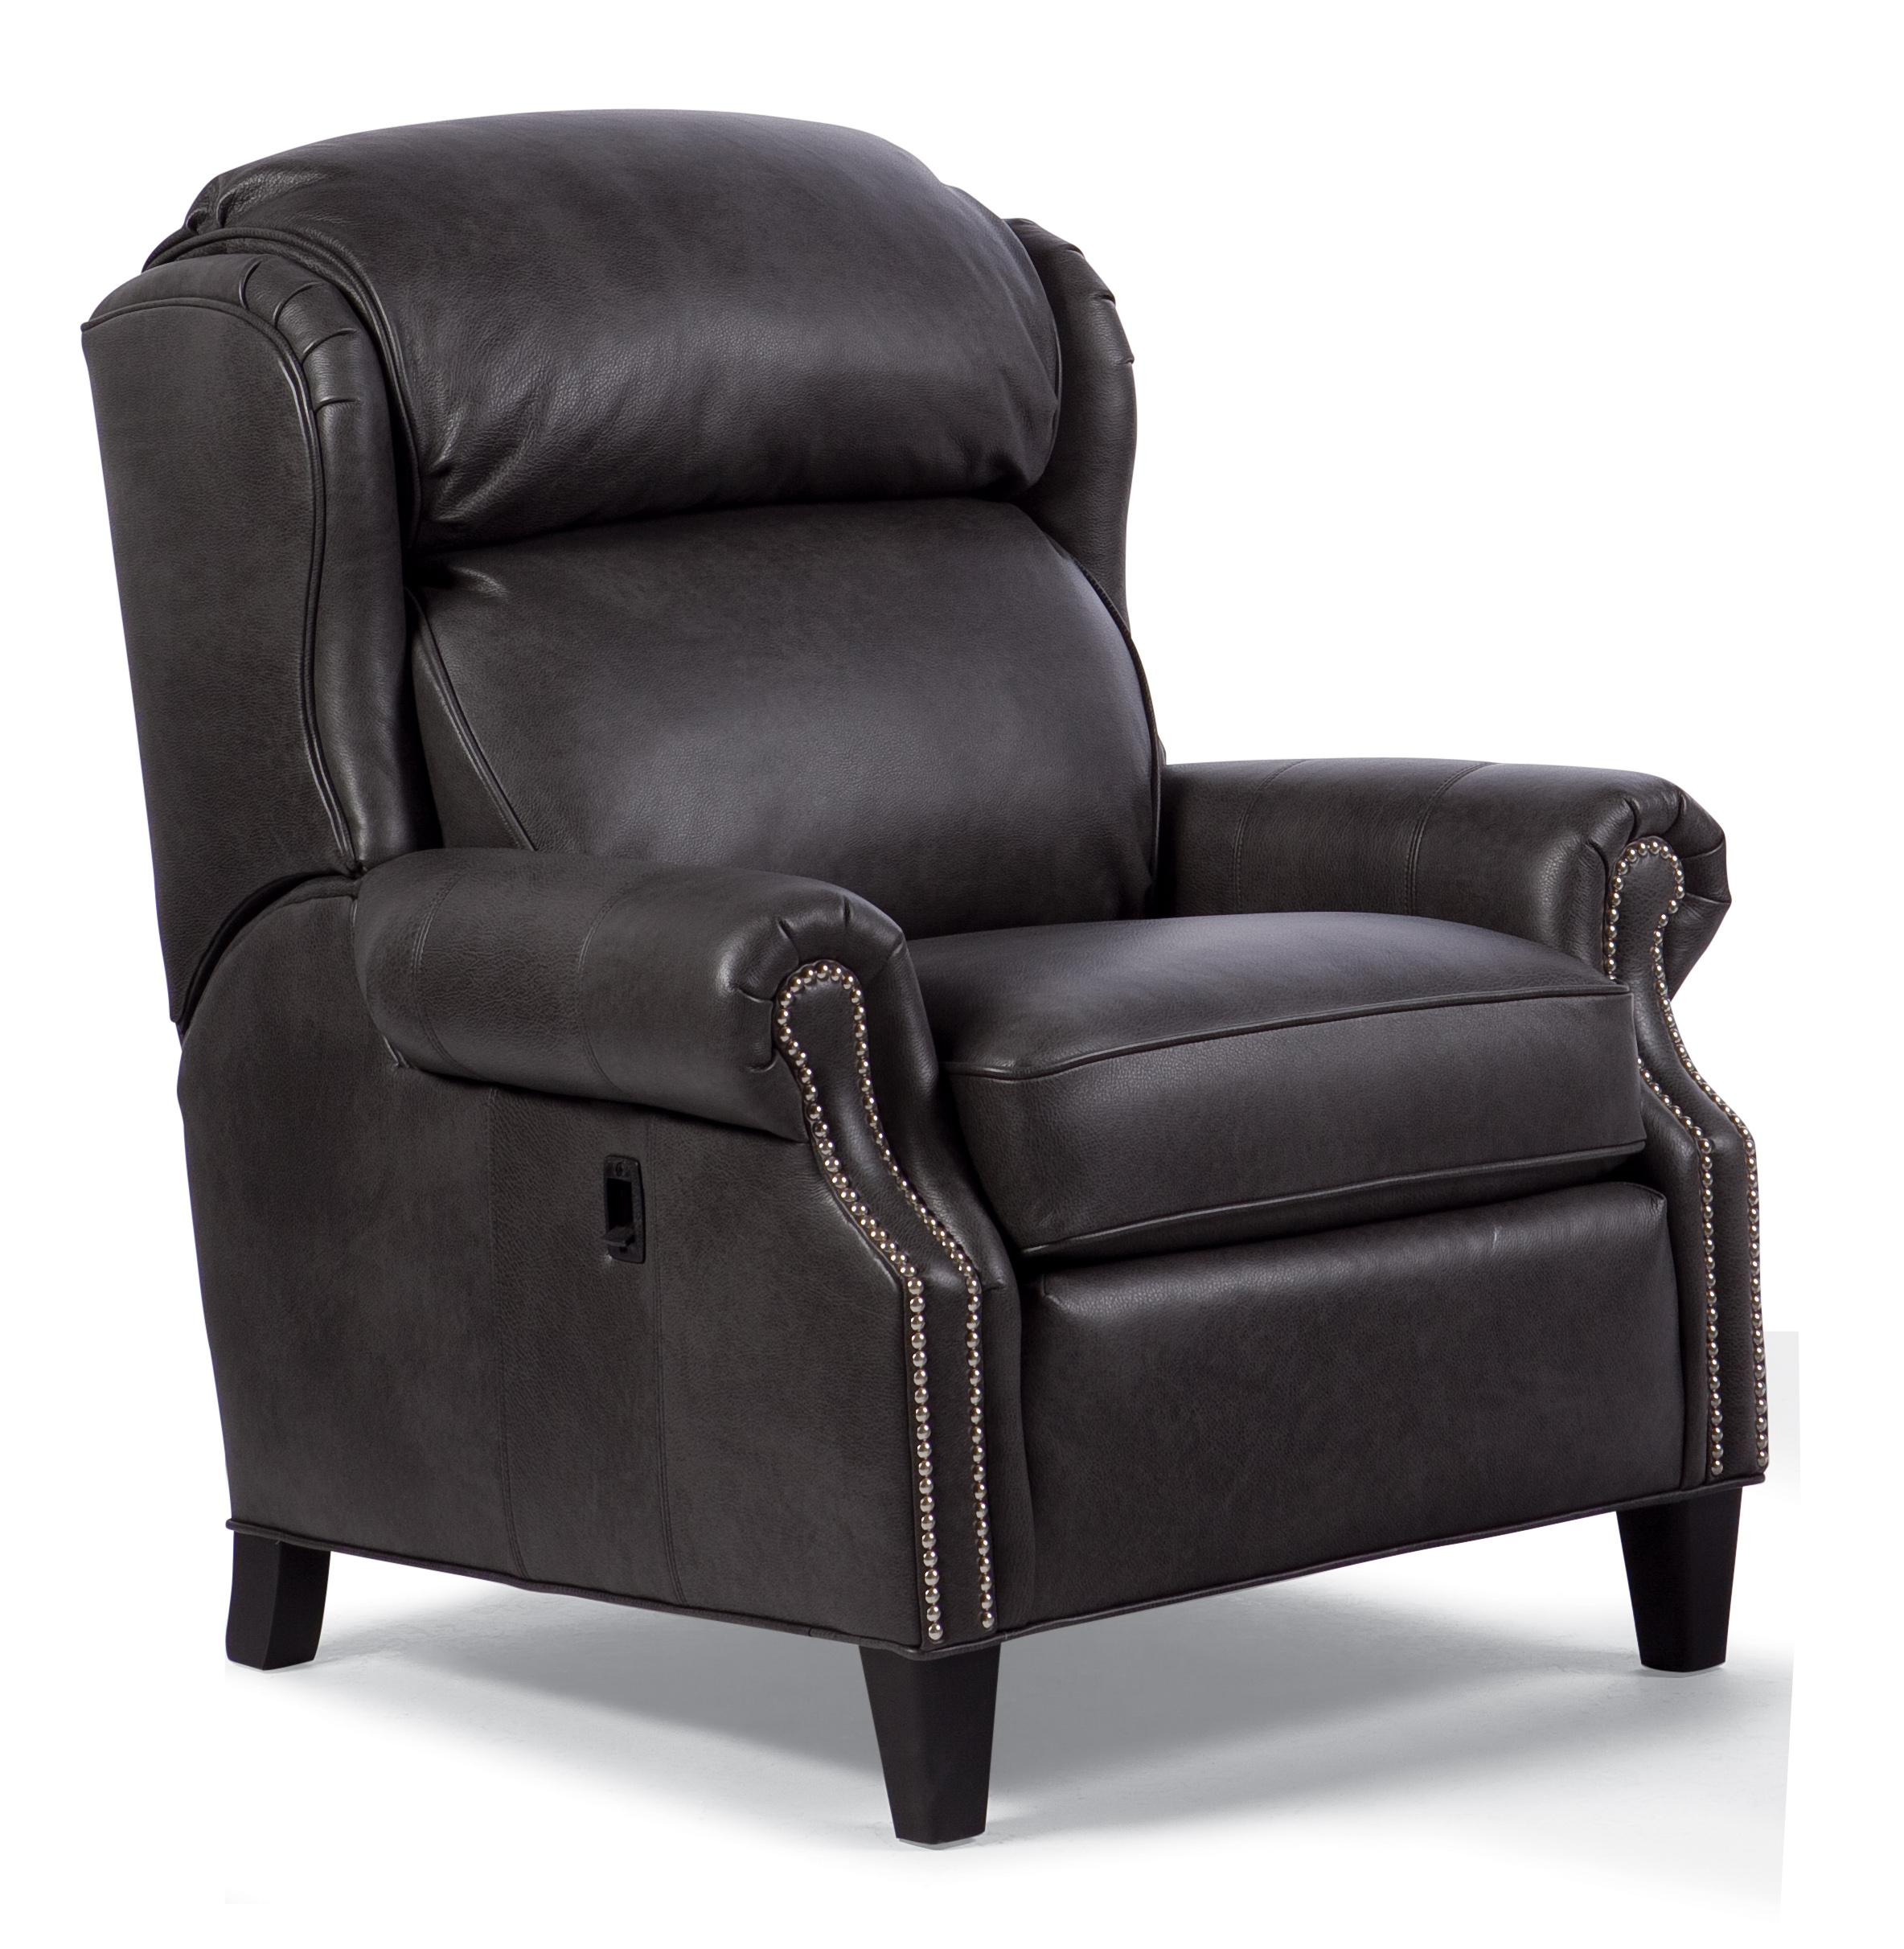 Big/Tall Motorized Reclining Chair with Nailhead Trim  sc 1 st  Wolf Furniture & Big/Tall Motorized Reclining Chair with Nailhead Trim by Smith ... islam-shia.org